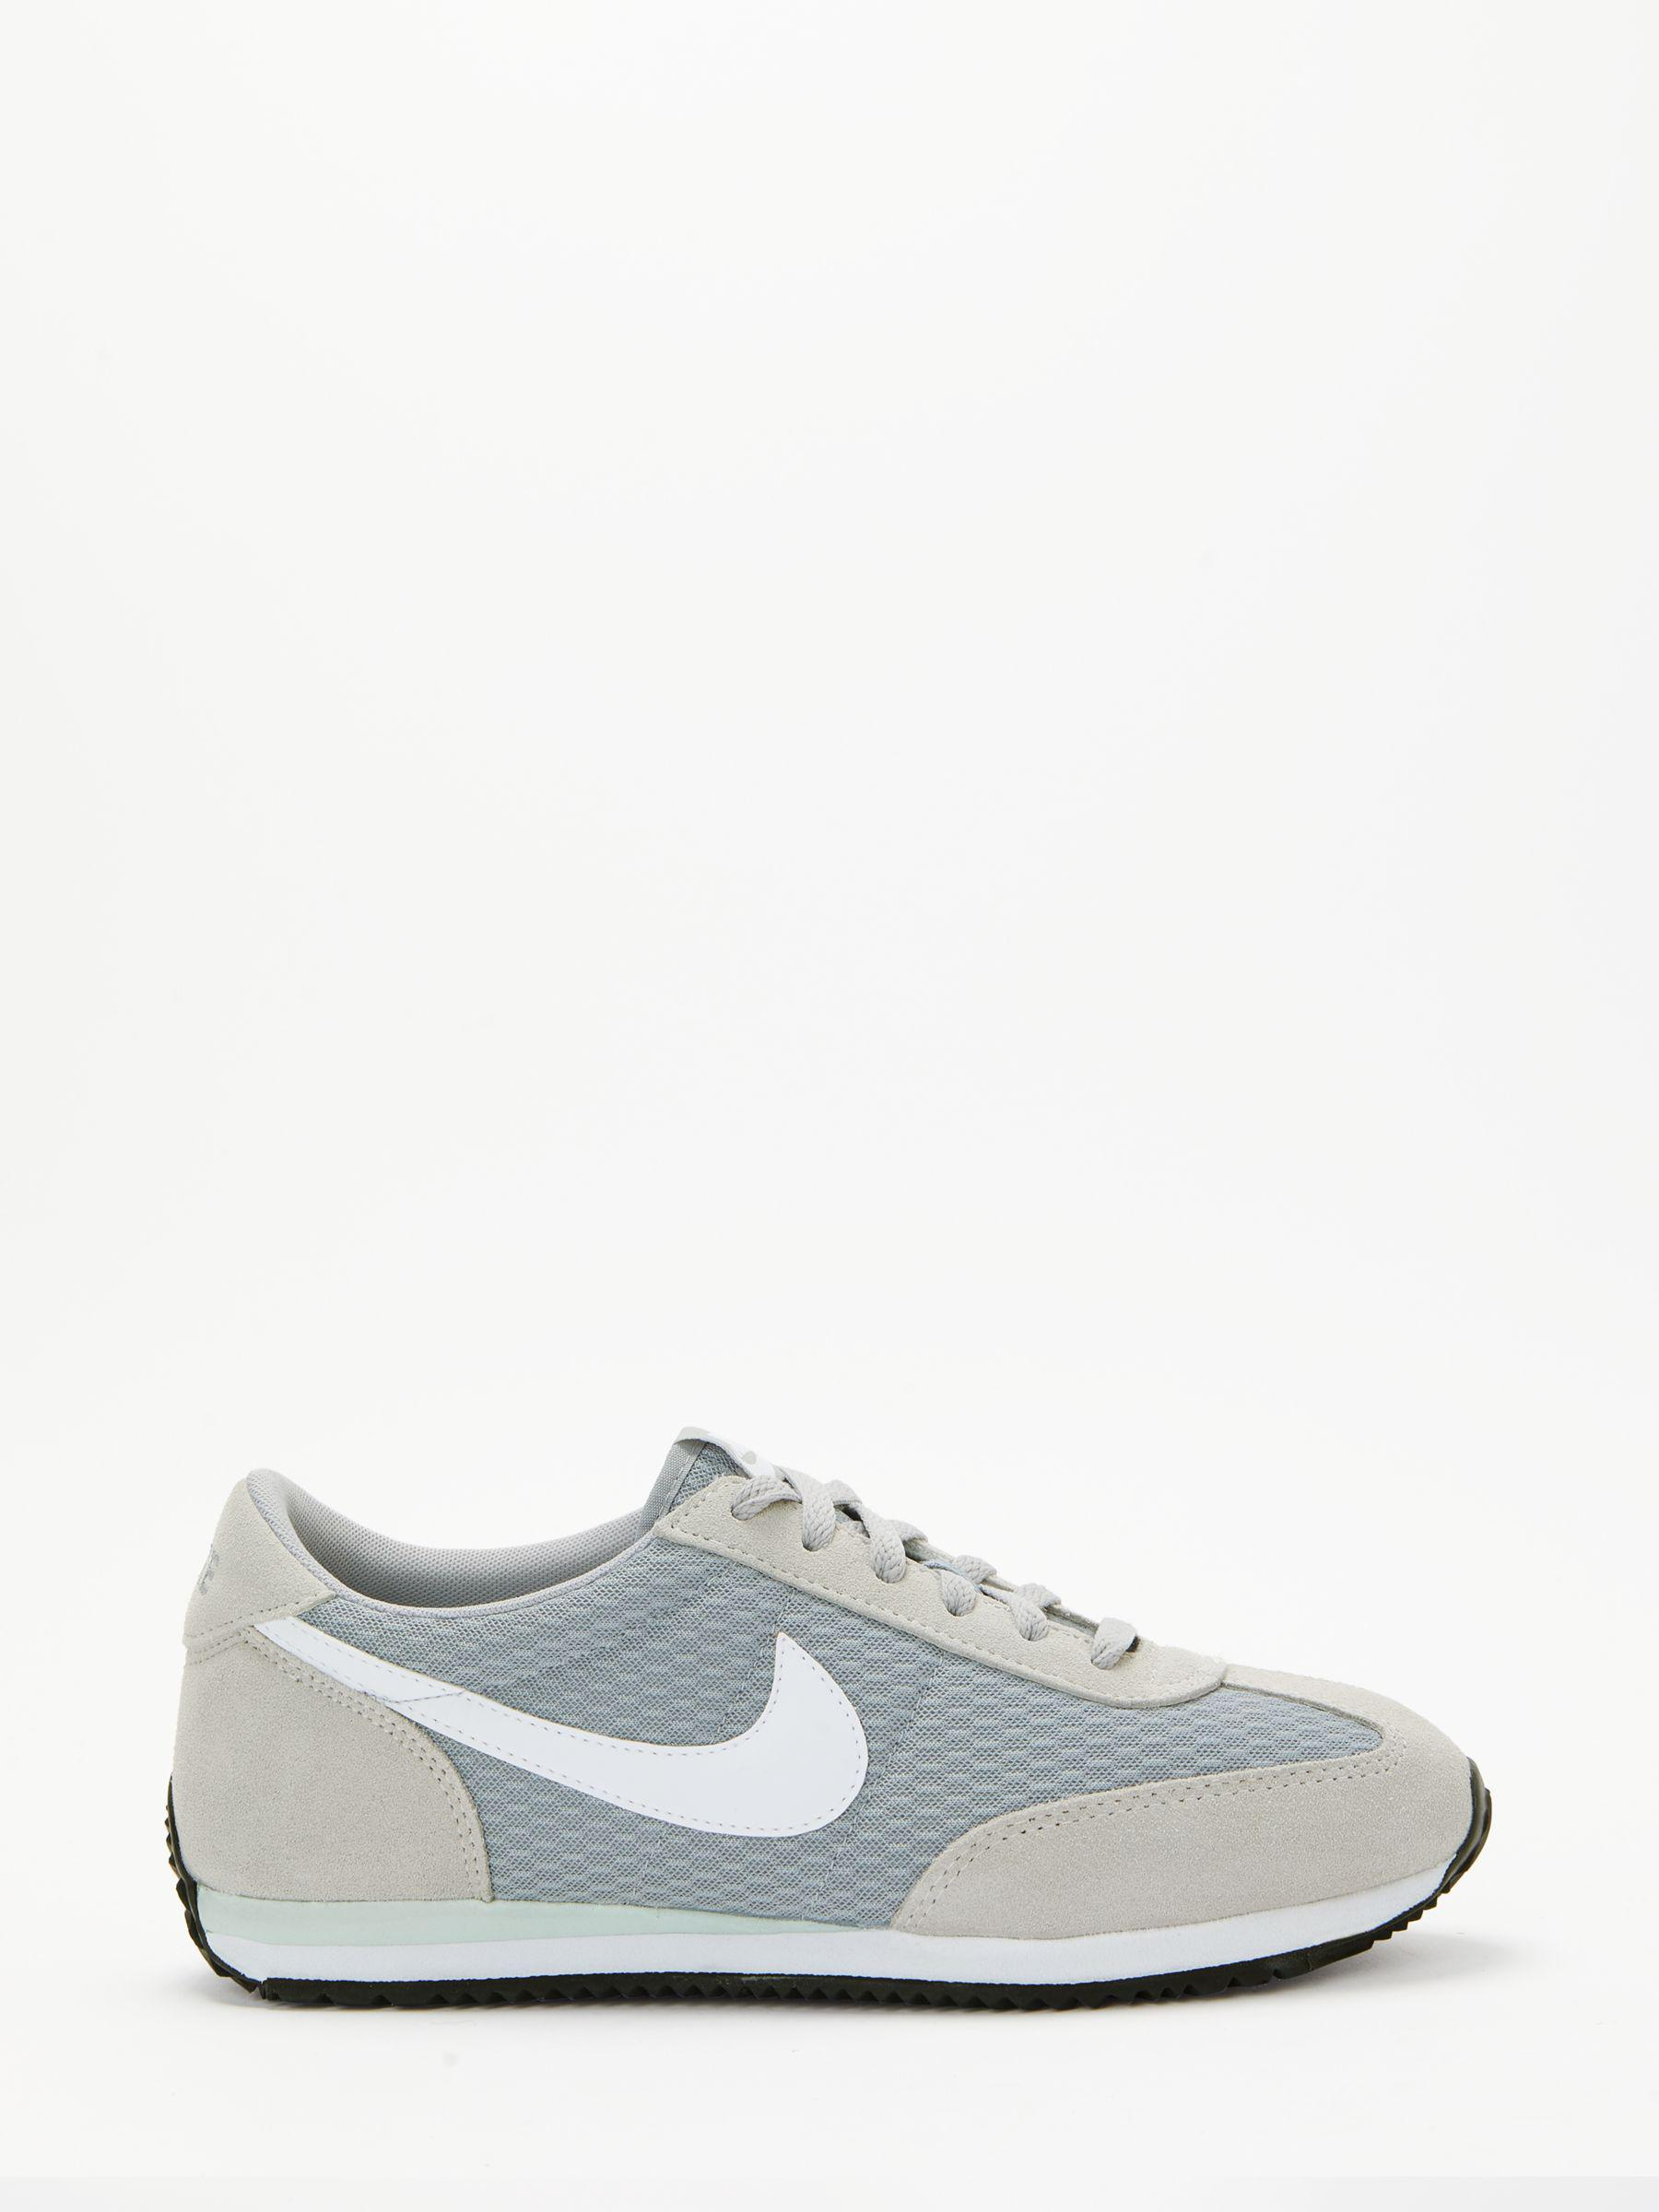 46e6315f3c1b Nike Oceania Textile Women s Trainers in Gray - Lyst